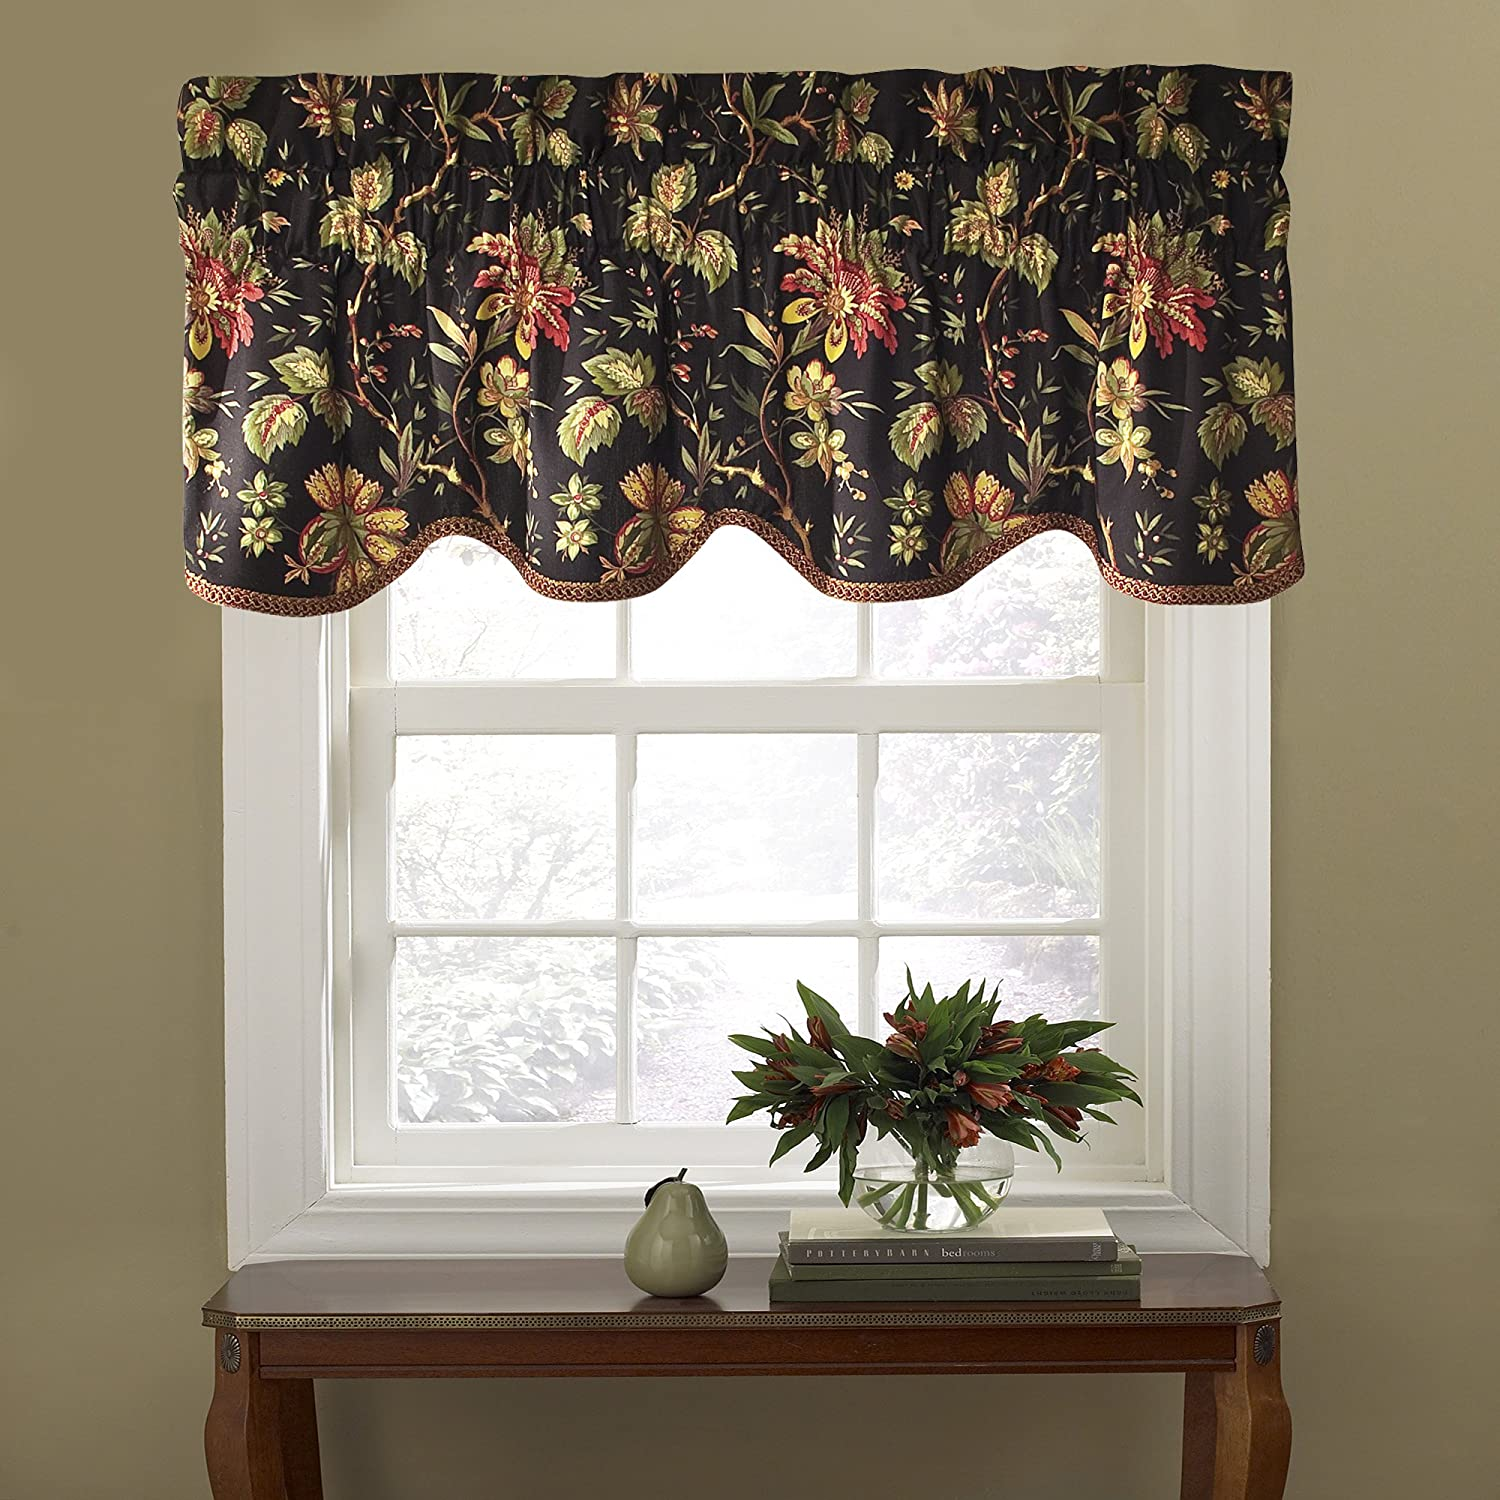 Waverly 10982050X015NO Felicite 50-Inch by 15-Inch Window Valance Noir